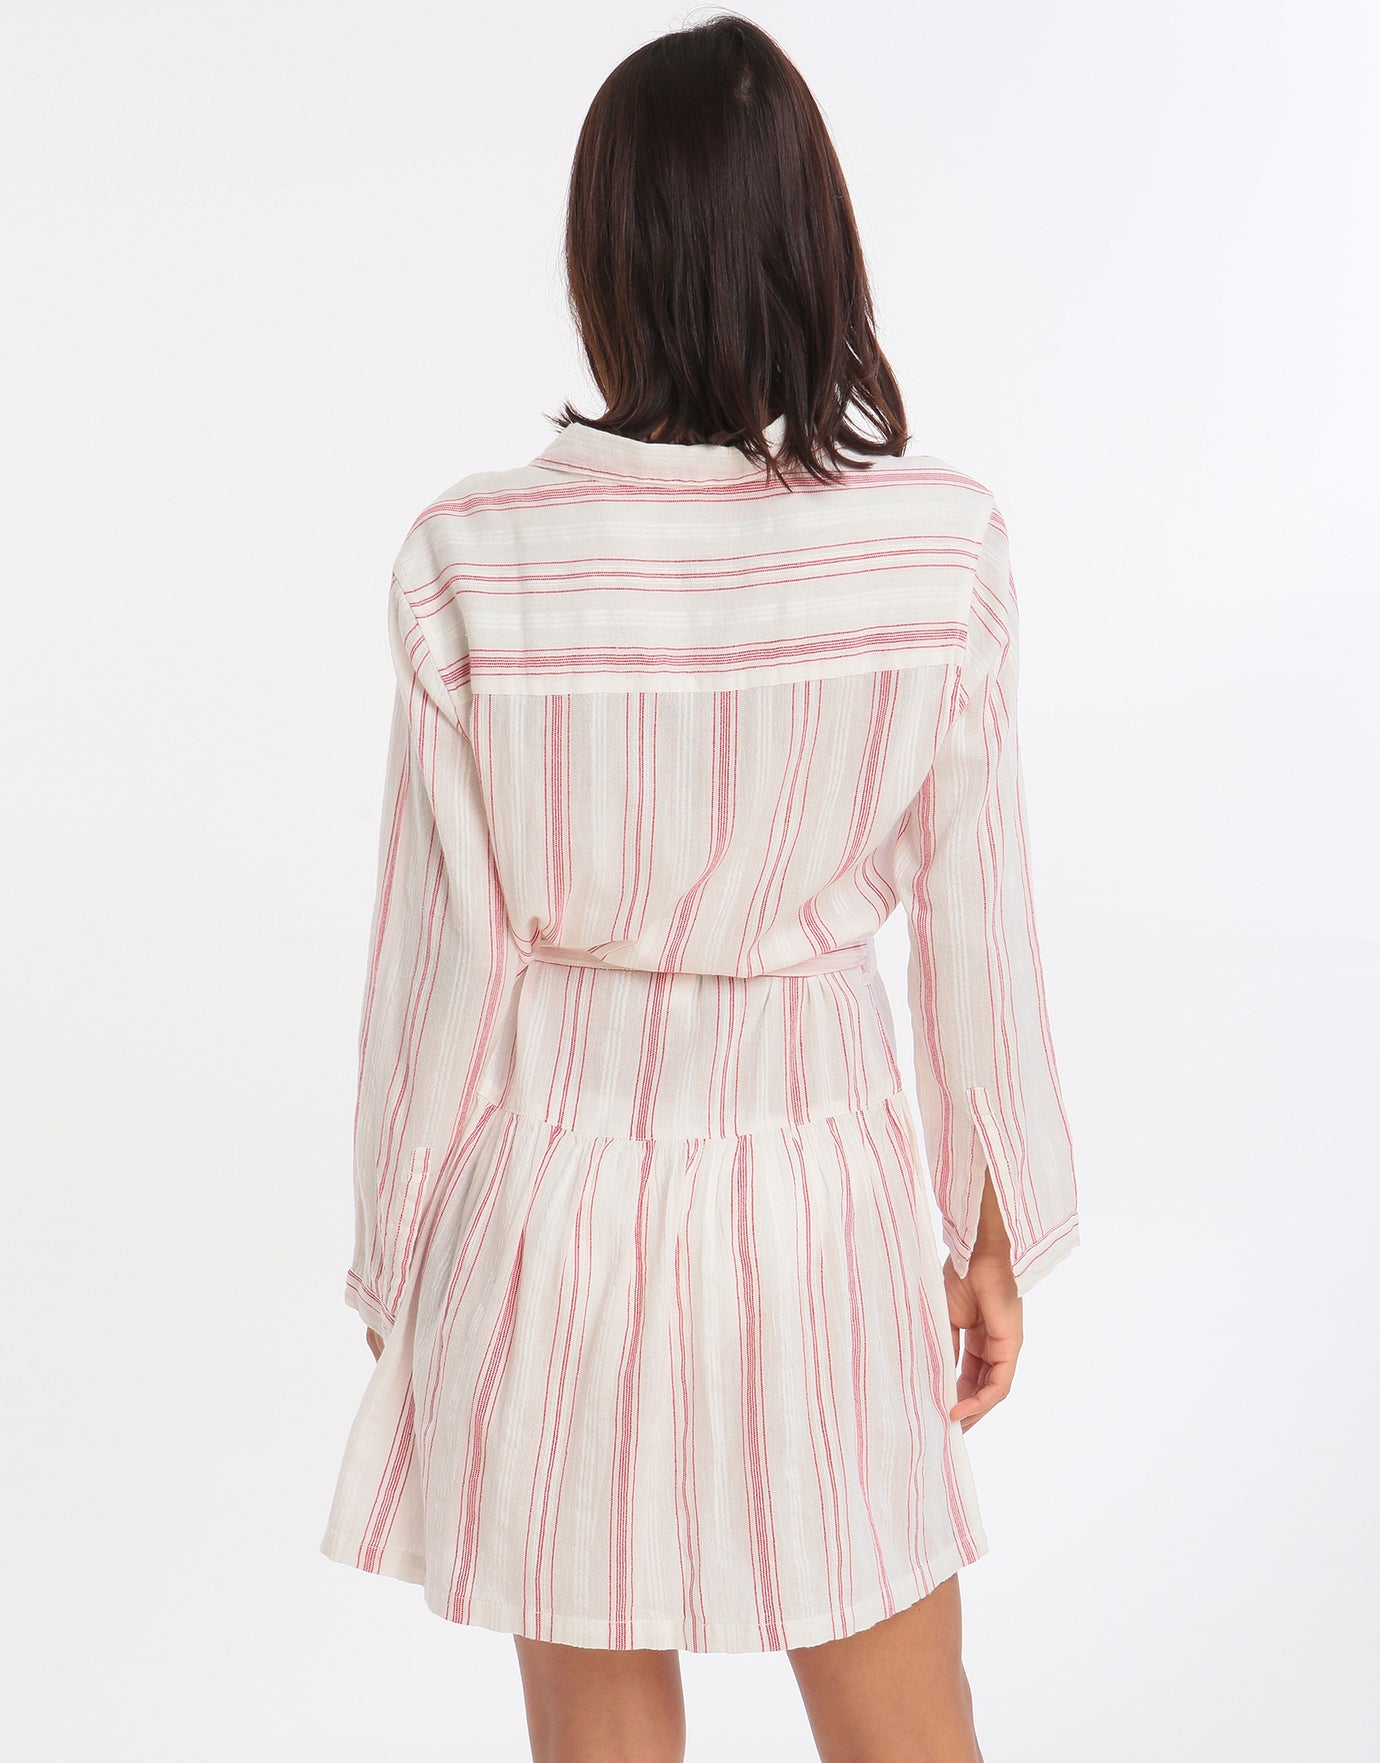 Melissa Odabash Amelia Belted Shirt Dress - Red Stripe